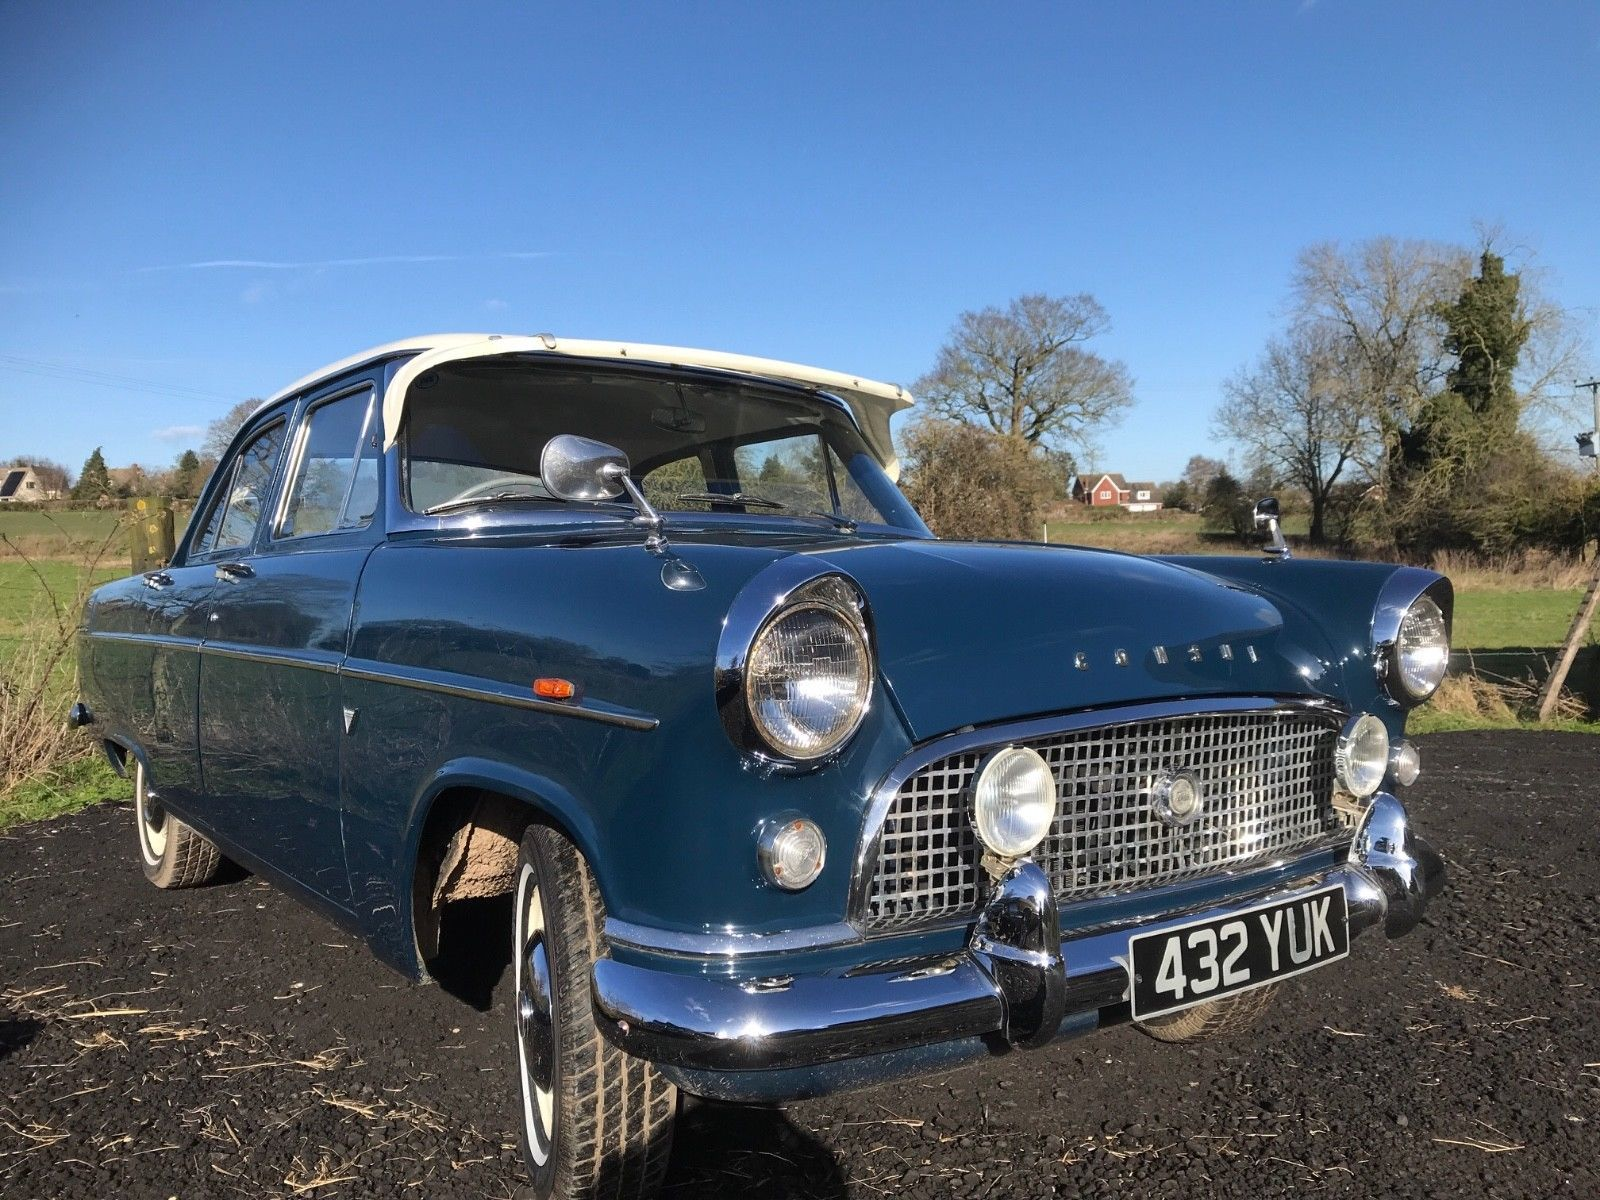 Ebay 1960 Ford Consul Mk2 Super Condition Long Mot Runs And Drives Good Classiccars Cars Cars Motorcycles Classic Cars Ford 1960s Cars